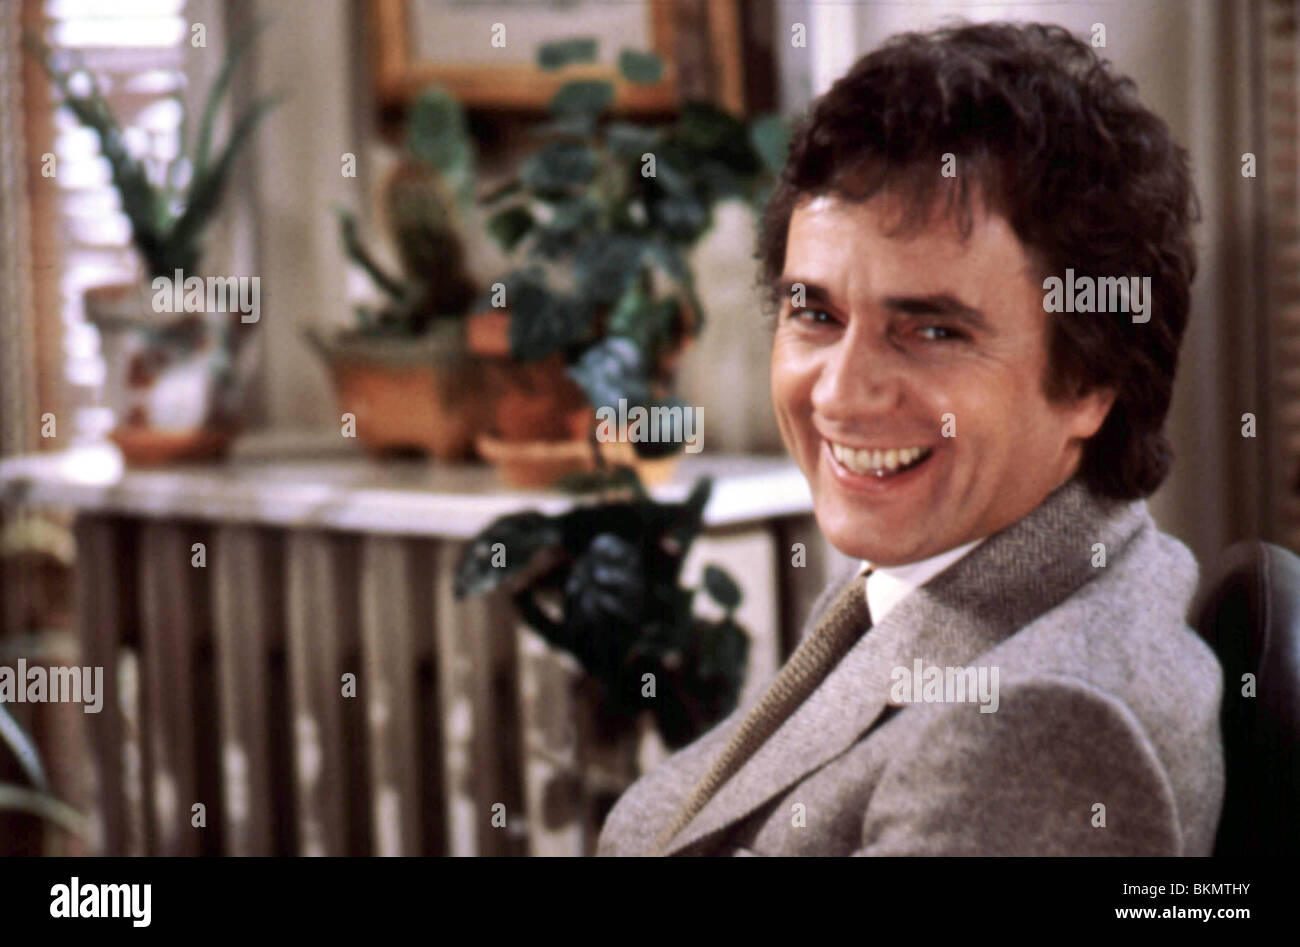 LOVESICK -1983 DUDLEY MOORE - Stock Image